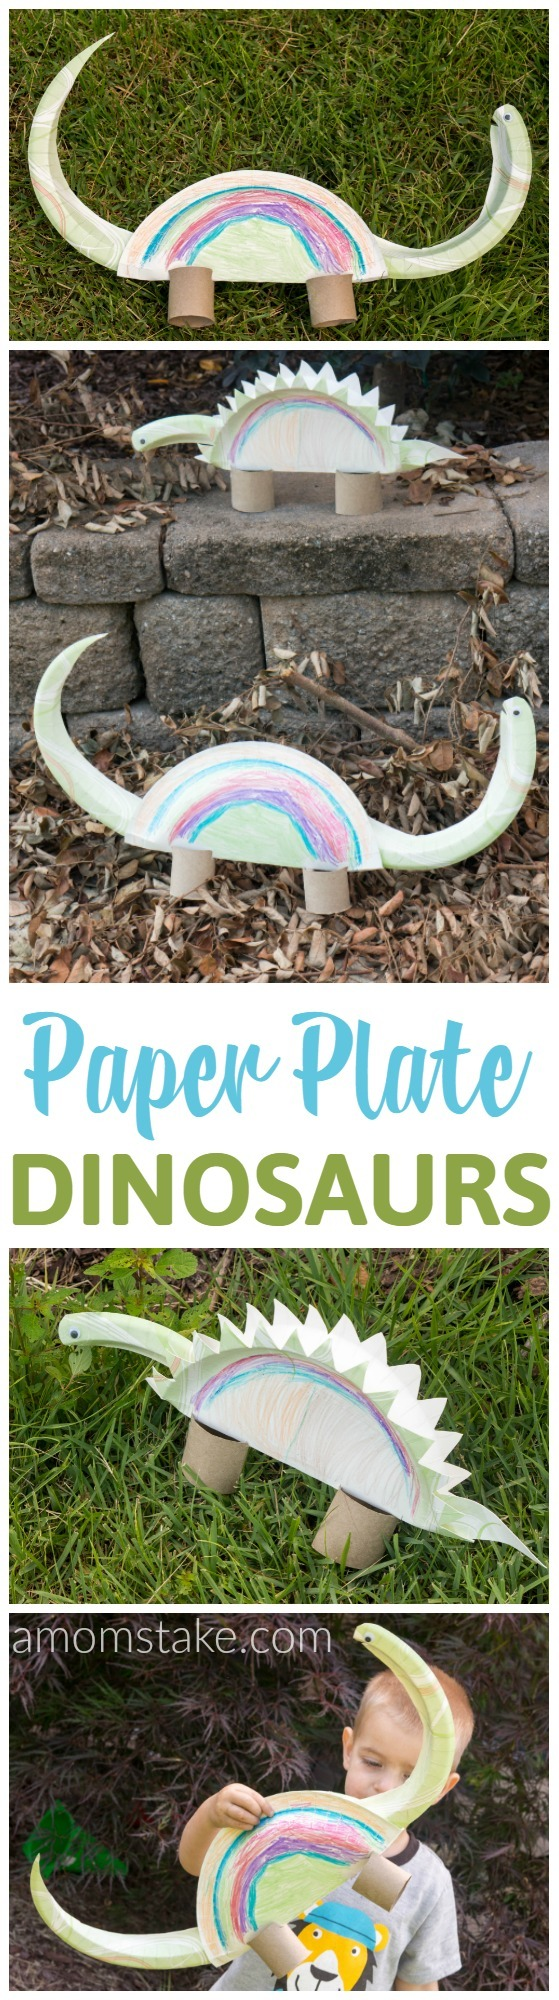 Paper plate crafts are so much fun, and cheap! We made paper plate dinosaur craft as part of our summer activities for kids! Everyone loves dinosaurs!